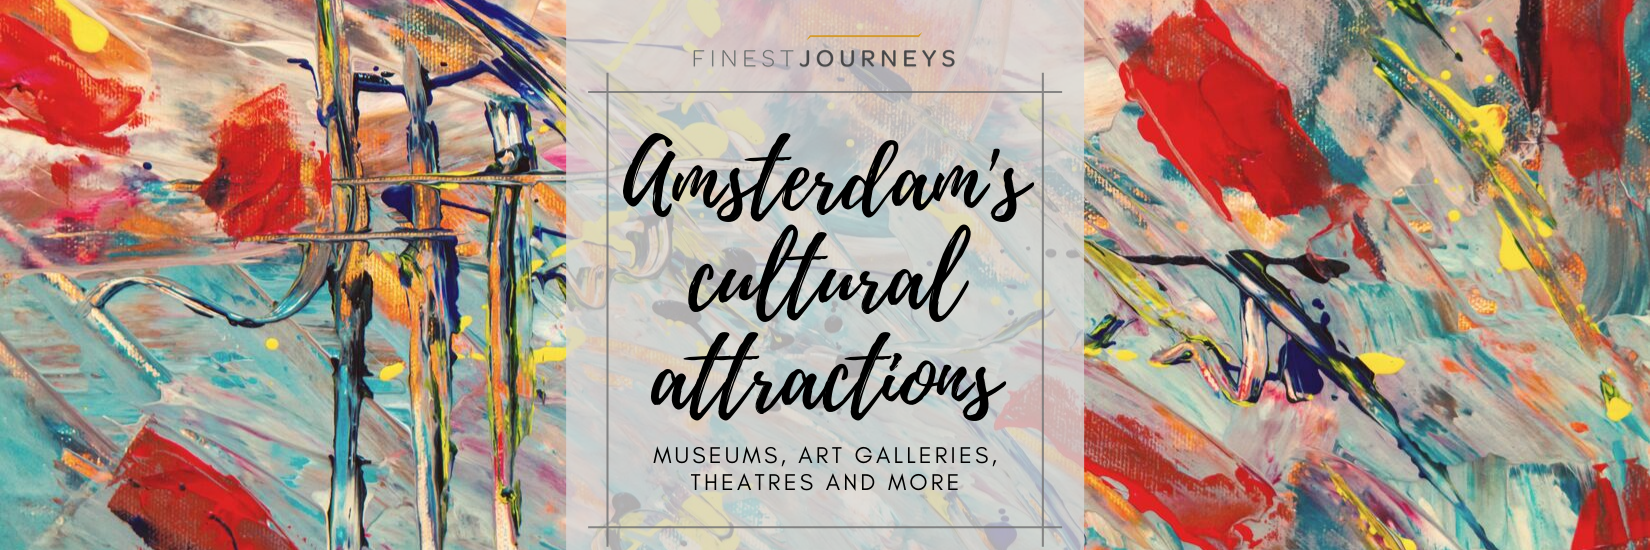 IMG : Amazing cultural attractions in Amsterdam: museums, art galleries, theatres and more